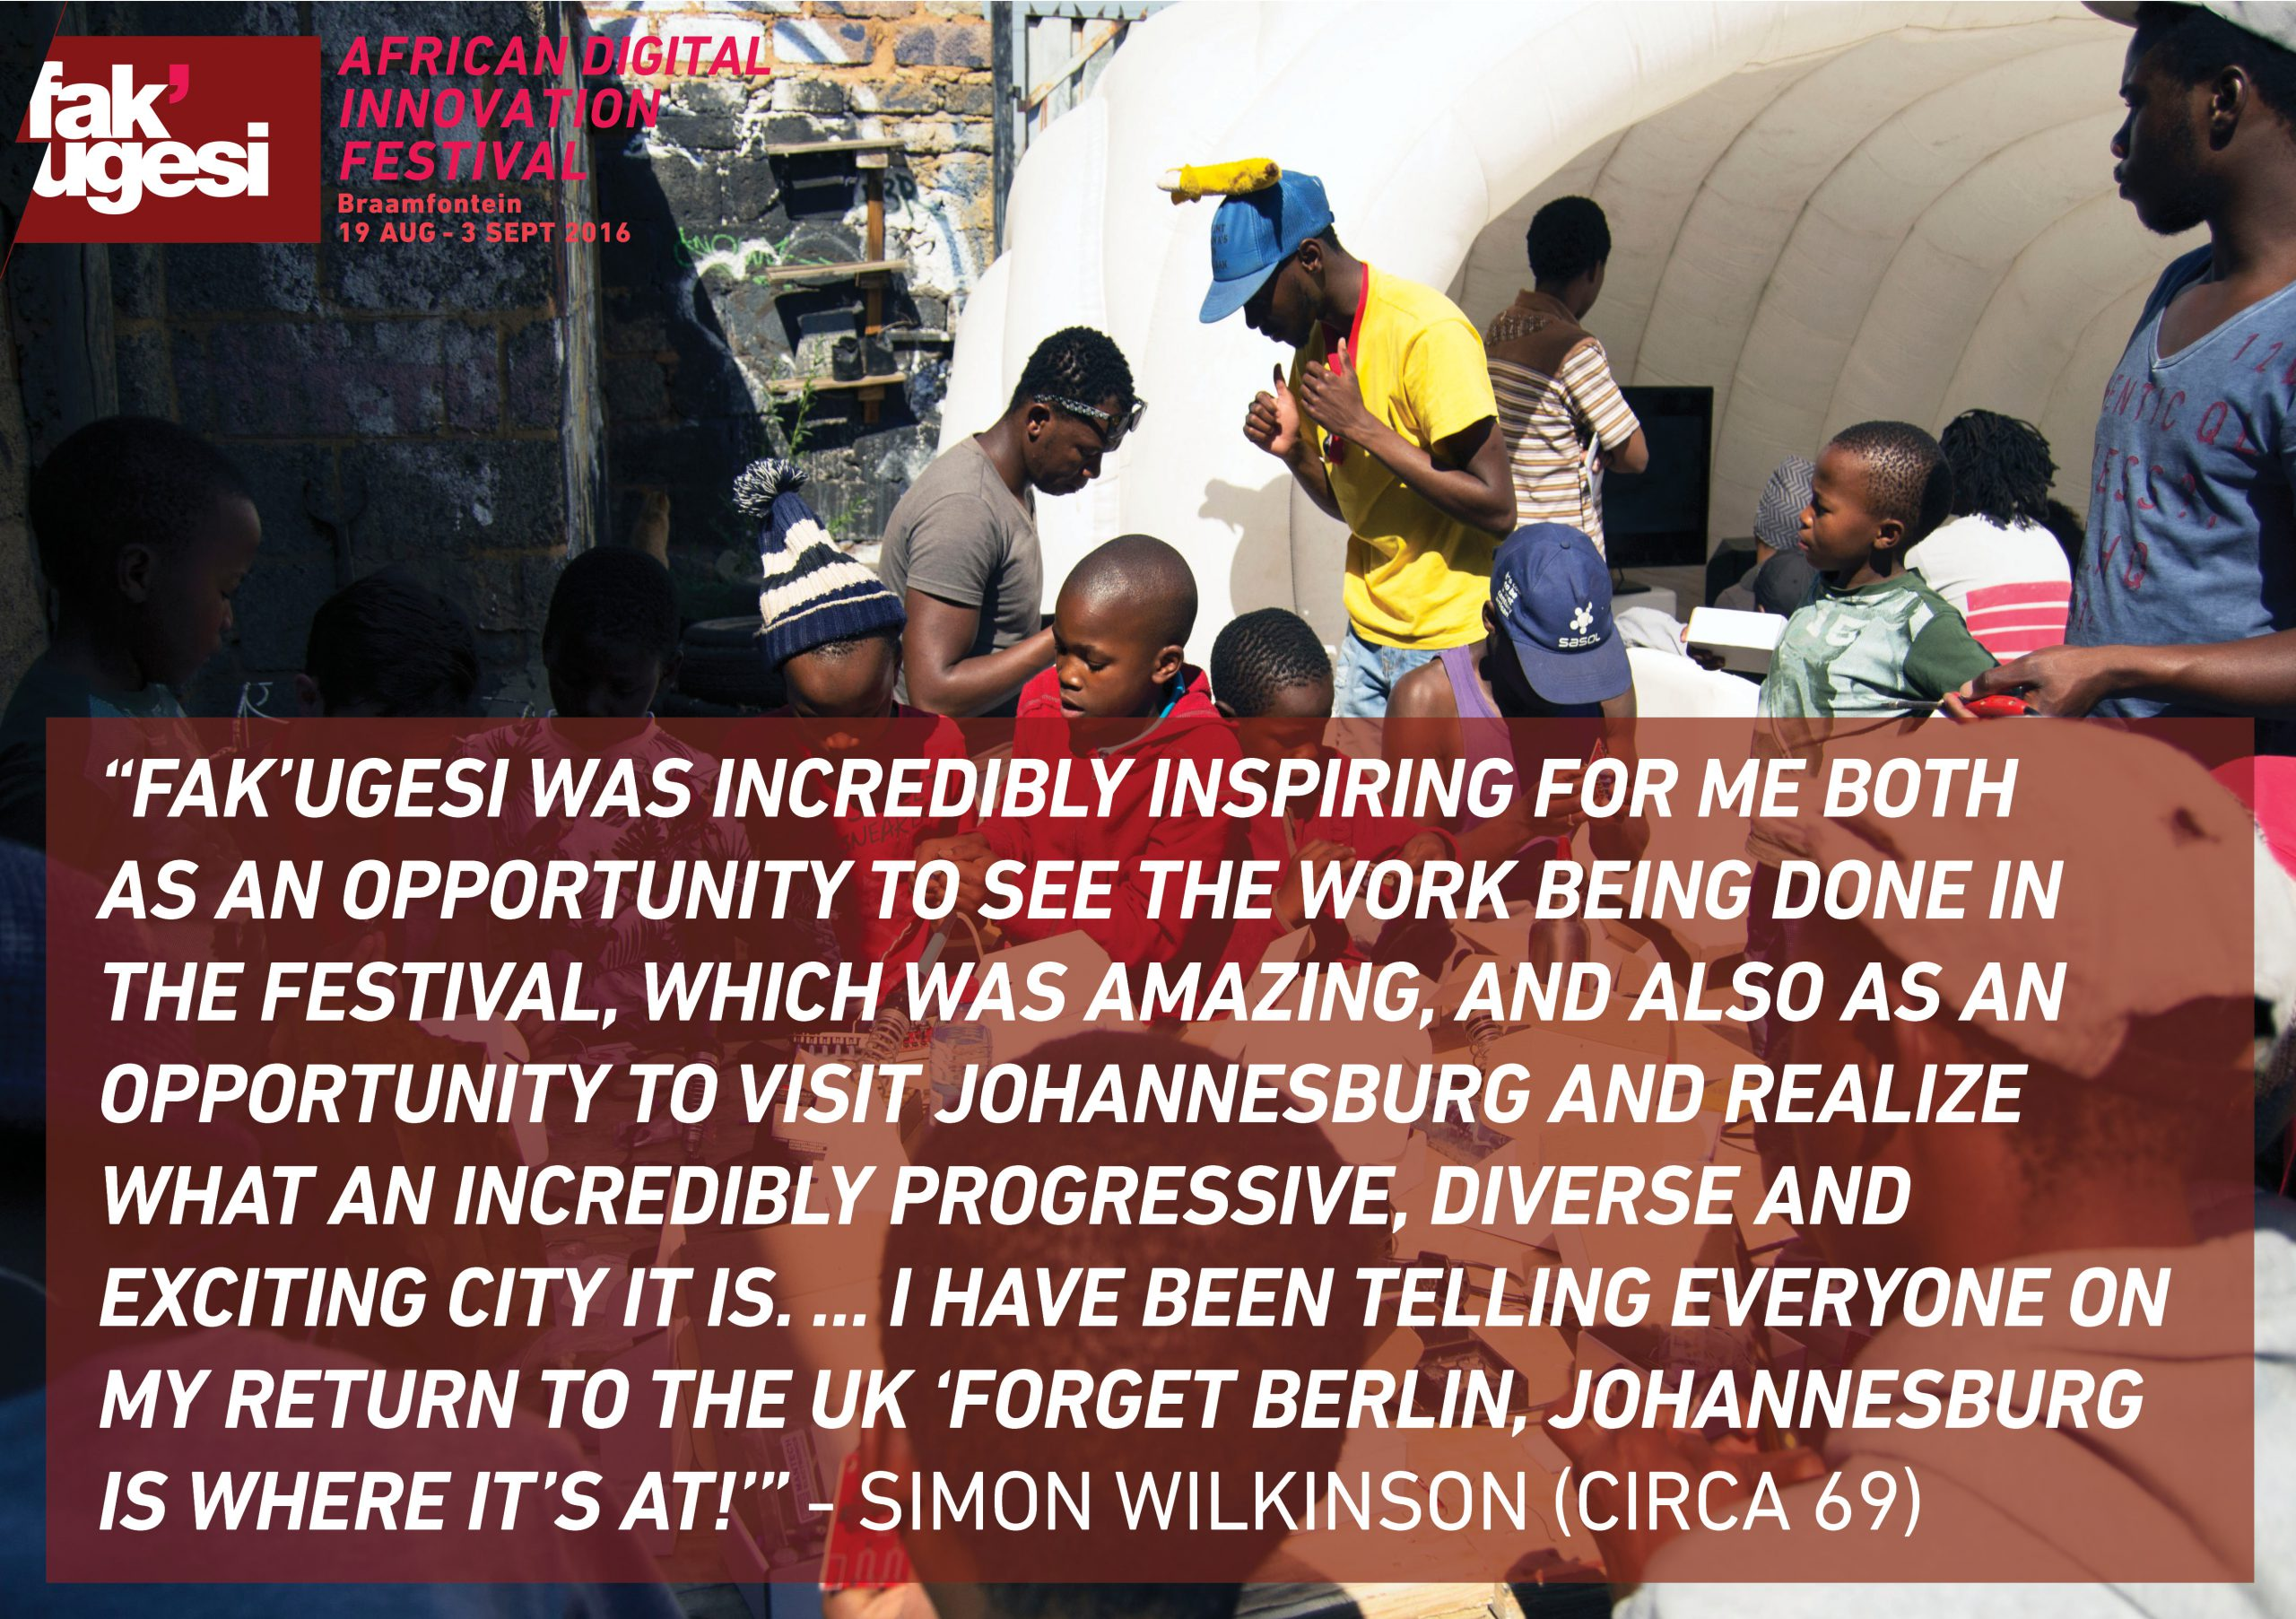 Quote by Simon Wilkinson of Circa 69, VR artist from the UK who gave workshops with The British Council Connect ZA @ Fak'ugesi